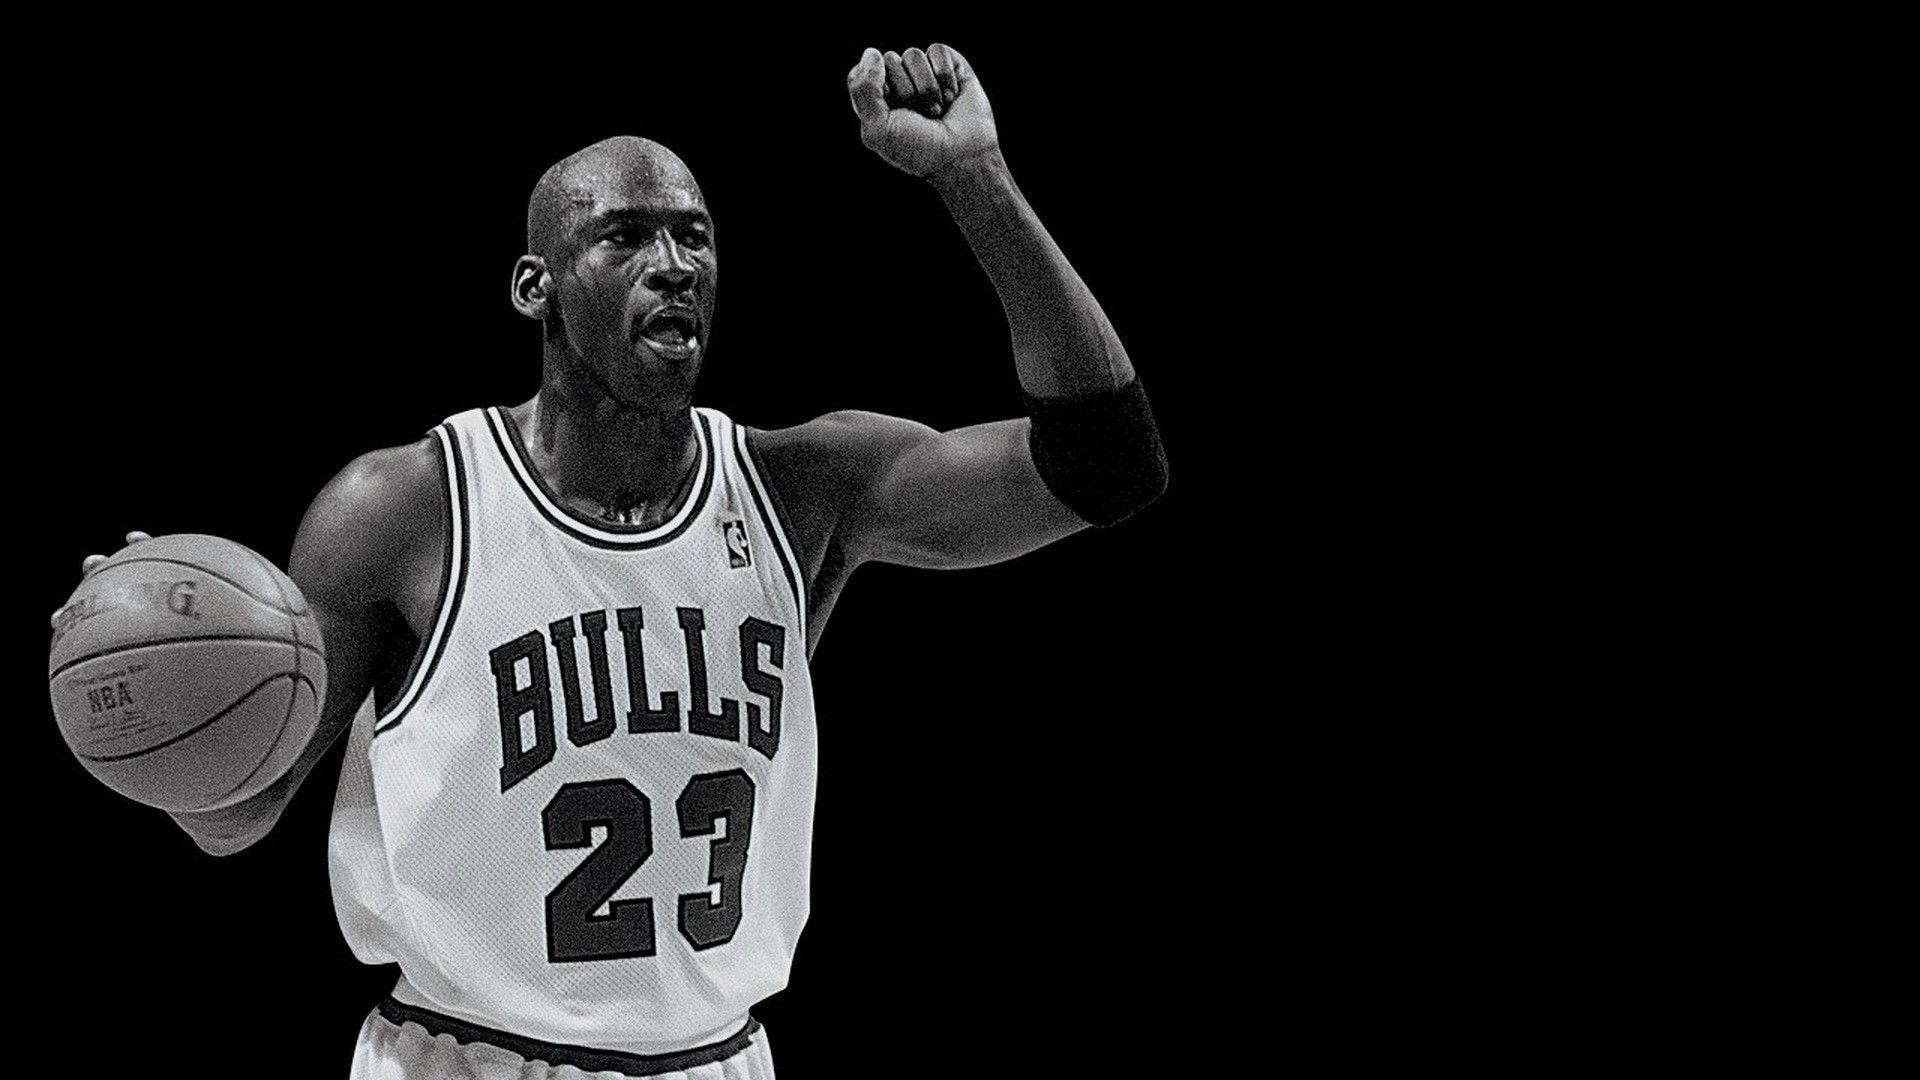 1920x1080 - Michael Jordan Wallpapers 25